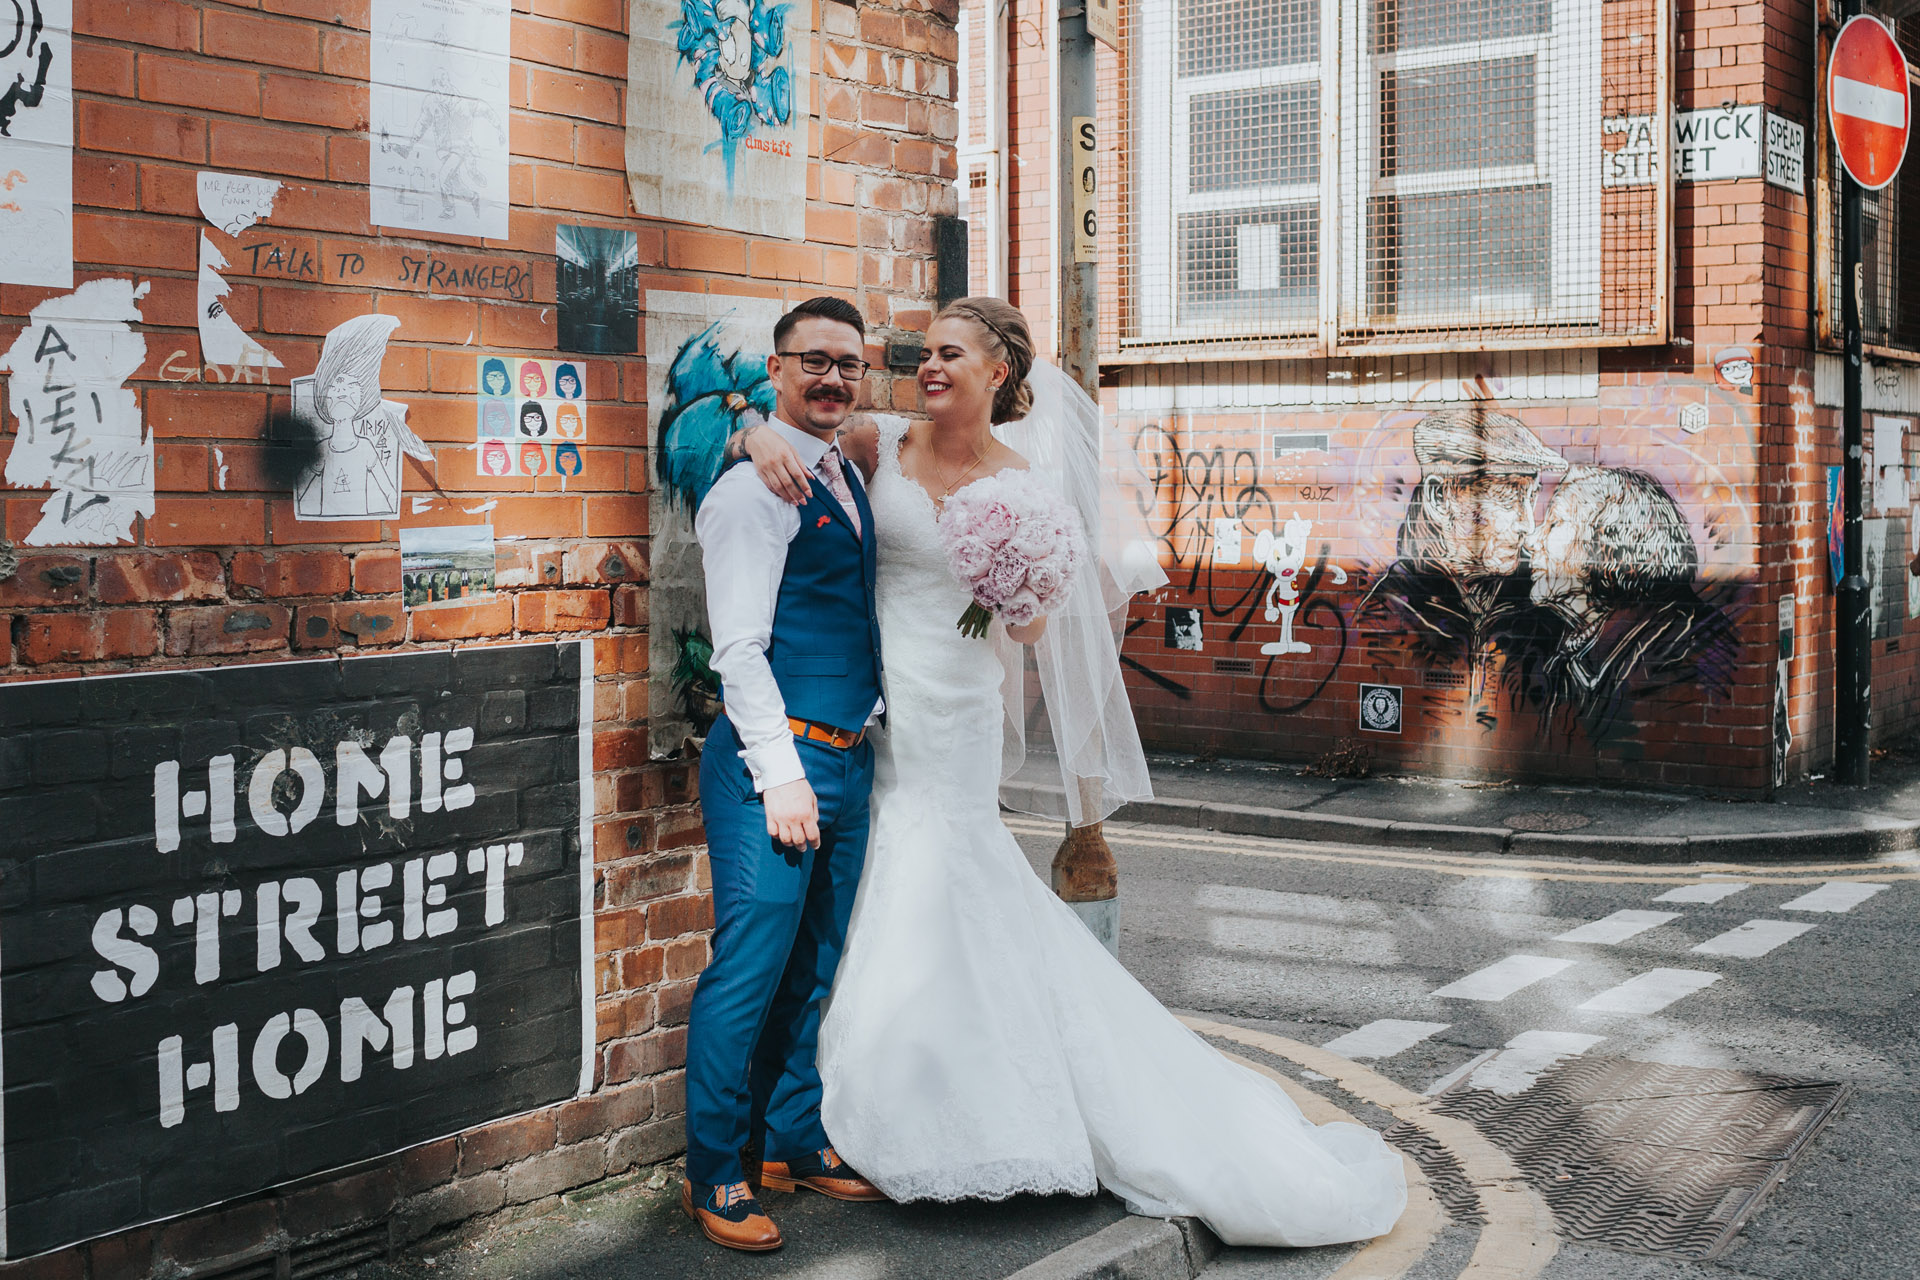 Bride and Groom stand on Warwick Street, Manchester for photograph.